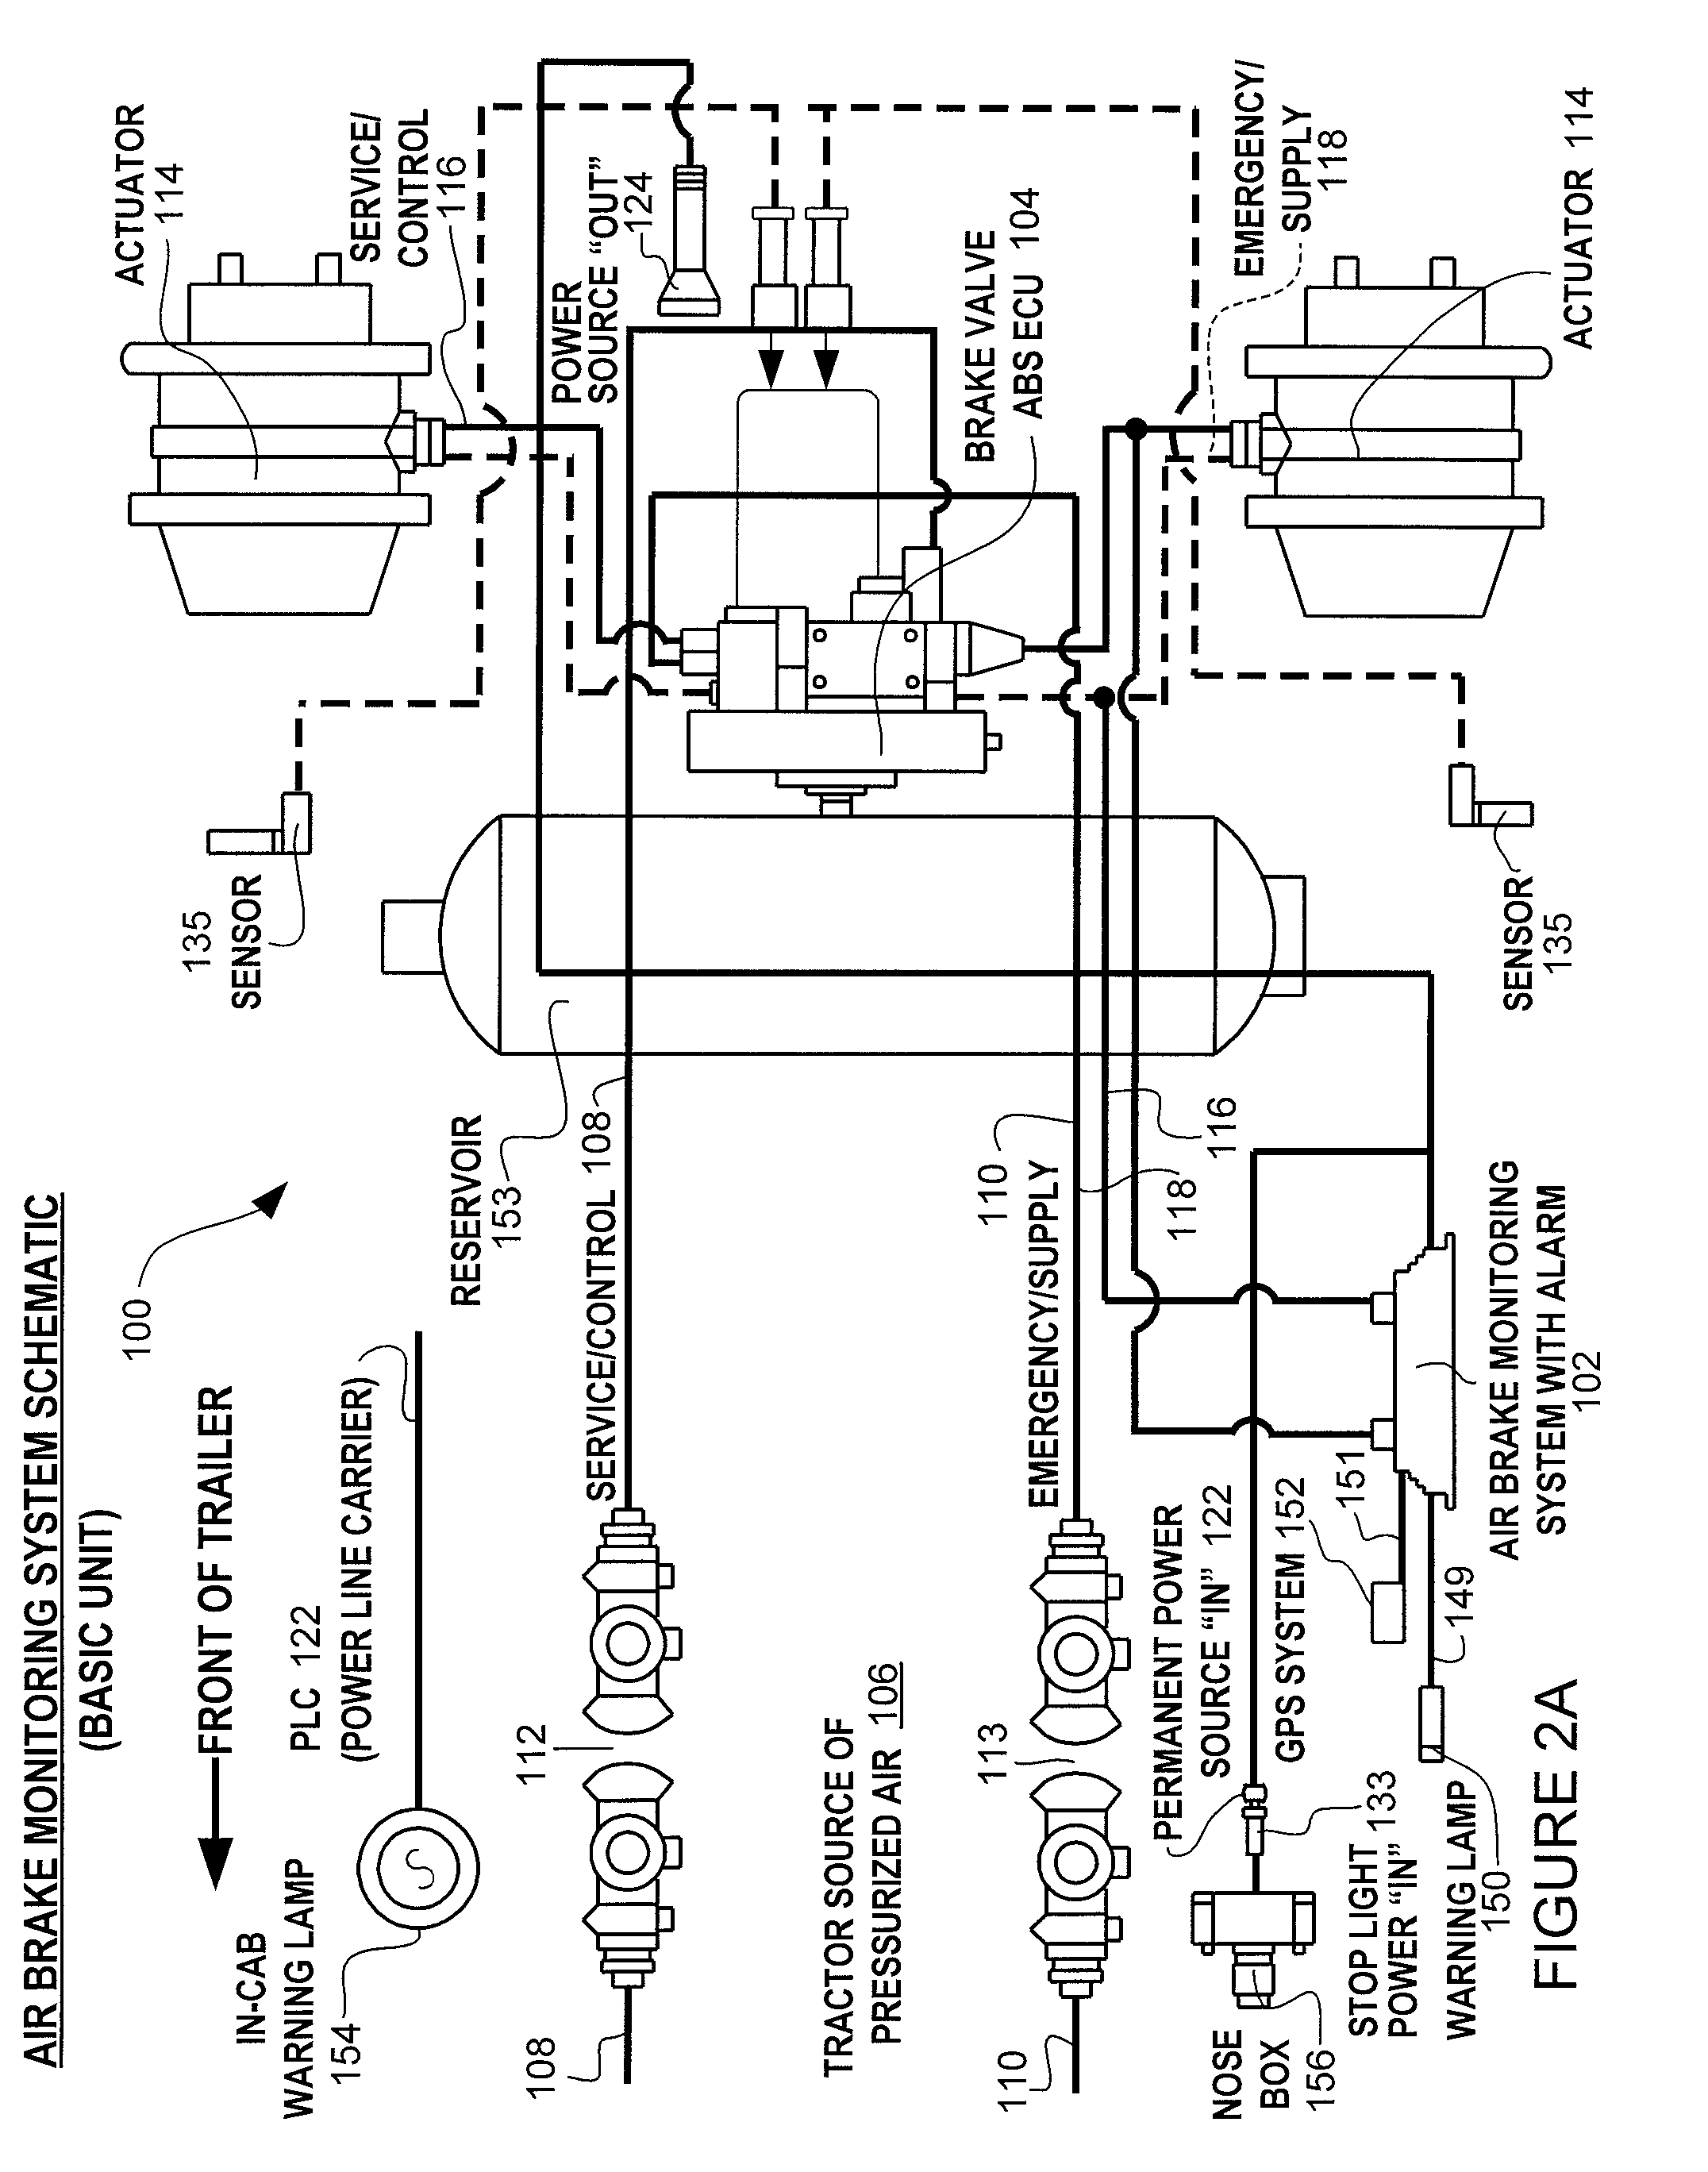 Mack Air Brake Wiring Diagram besides pact Dual Circuit Remote Brake Servo likewise Wiring Diagram For A Hydro Air System together with Eaton Antilock Brake Systems Manual besides Air Brake System. on bendix air brake systems abs